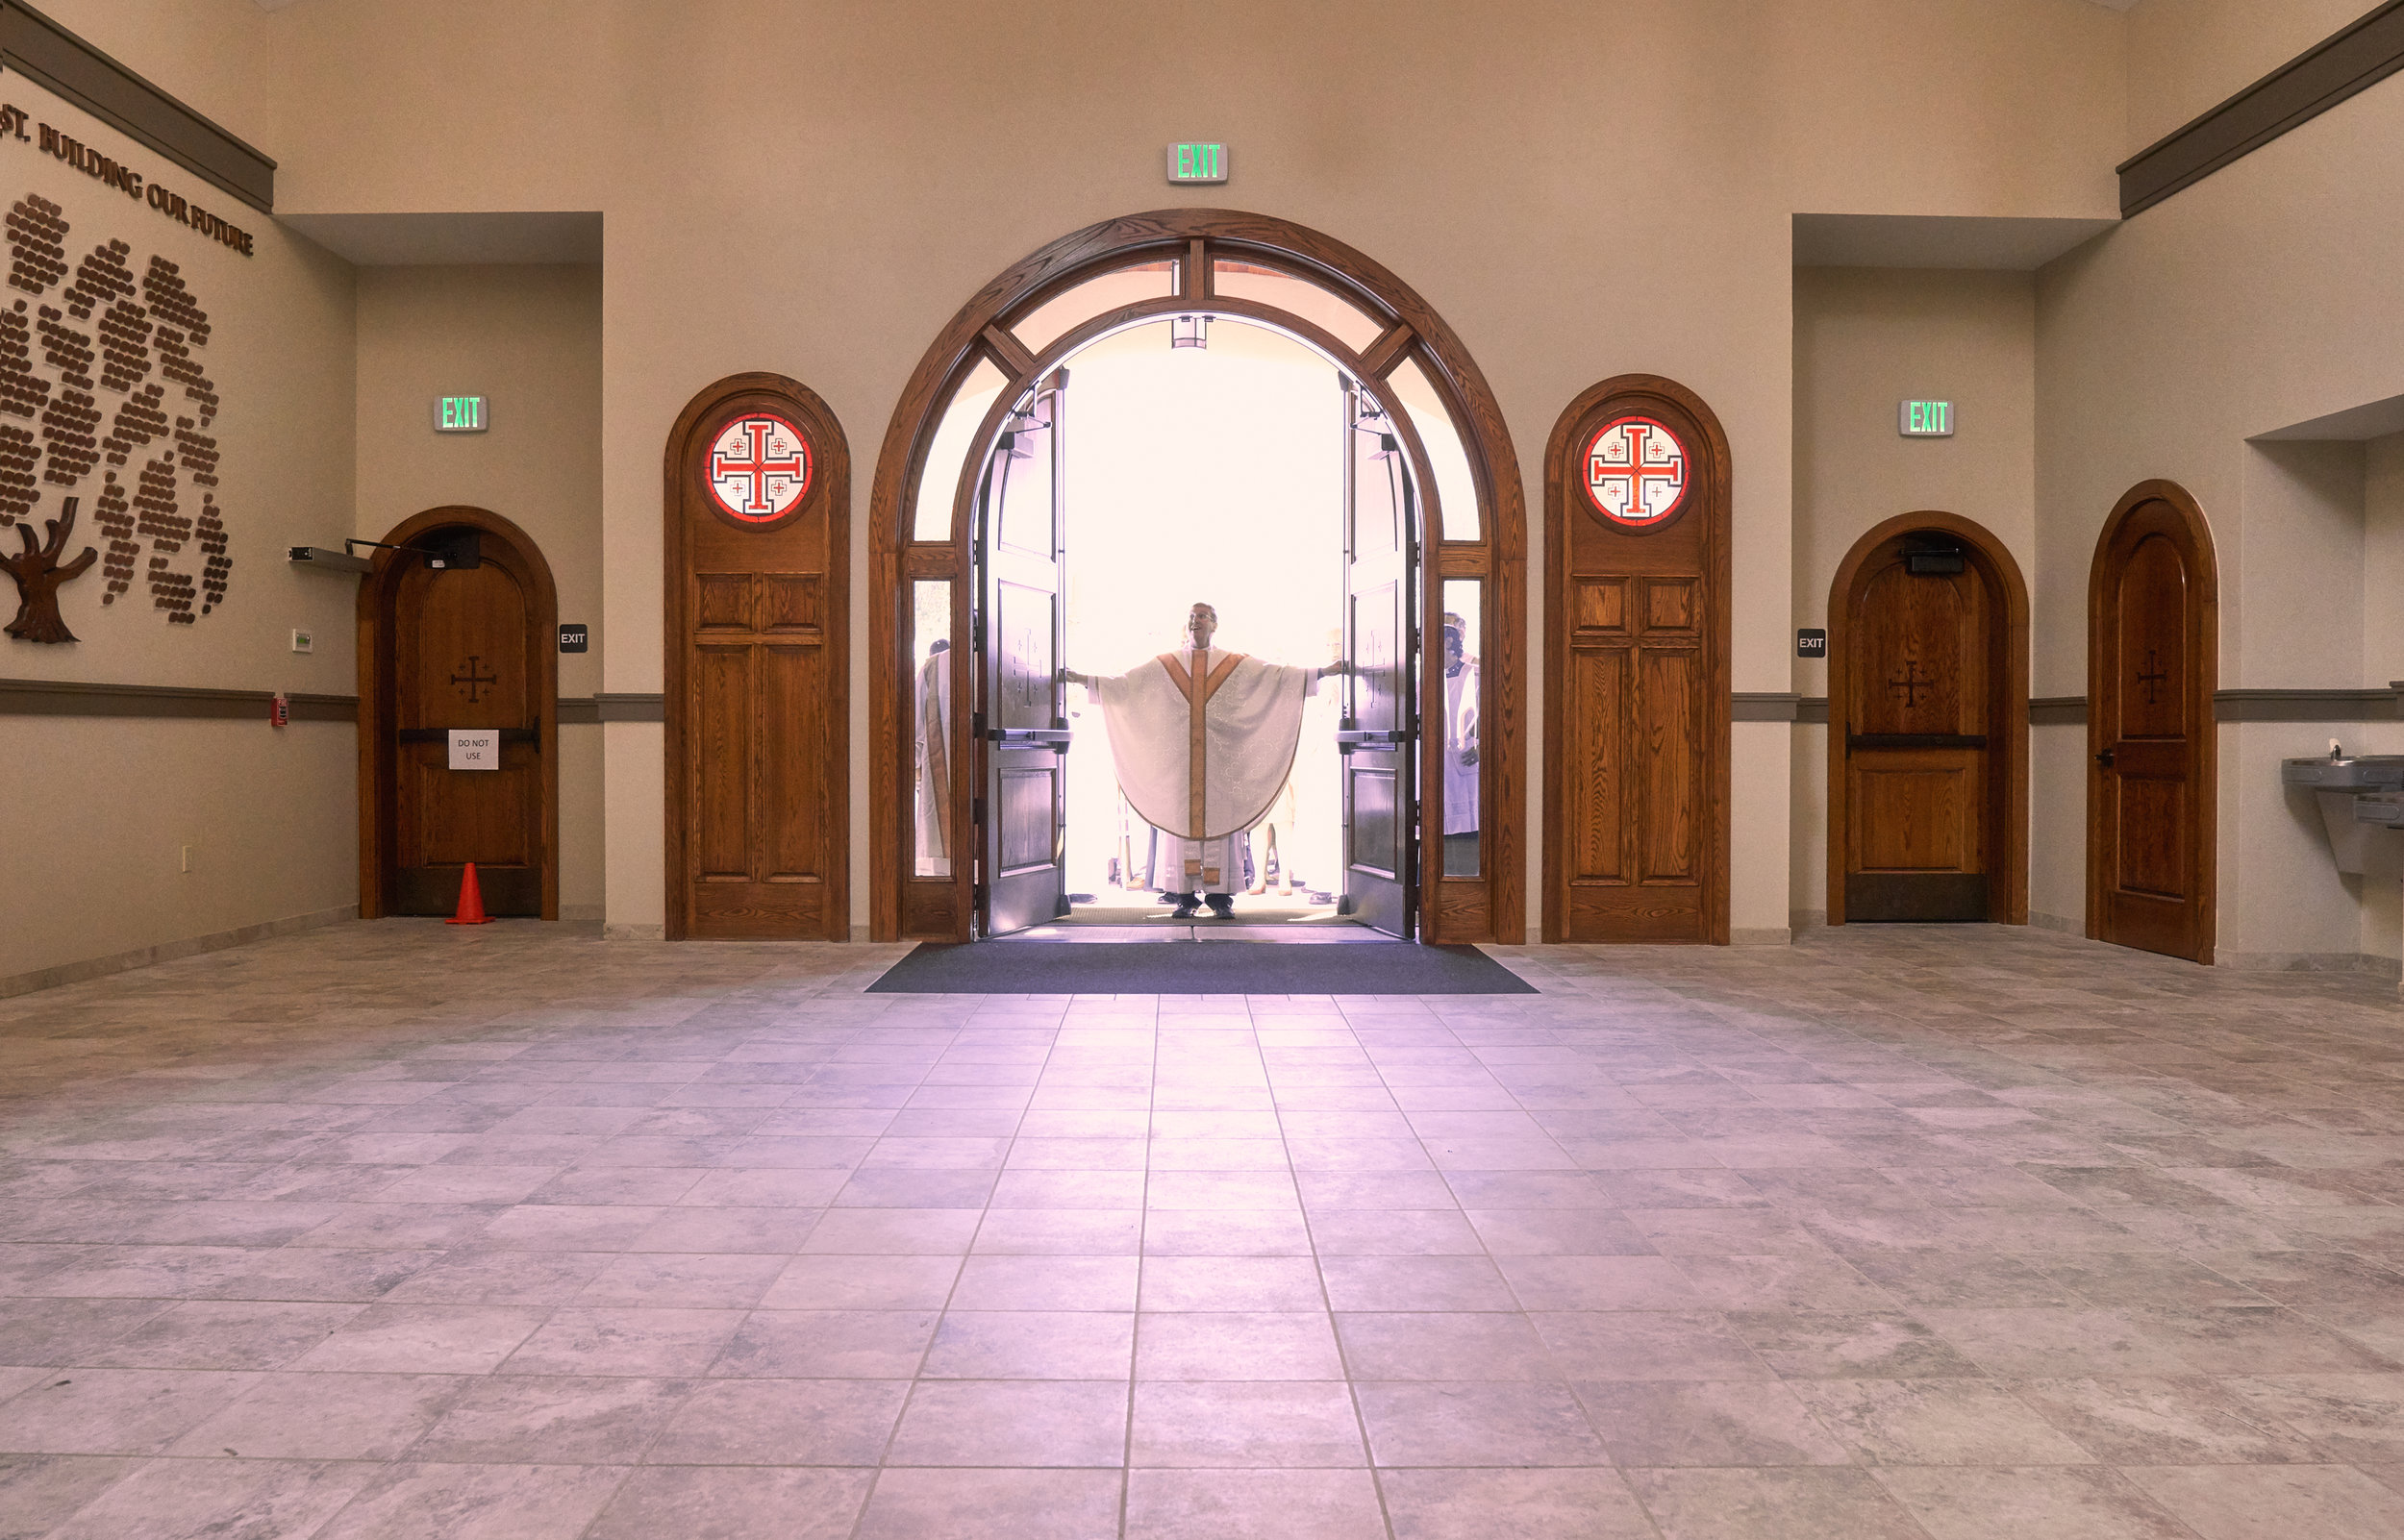 Opening the Doors of Our New Church